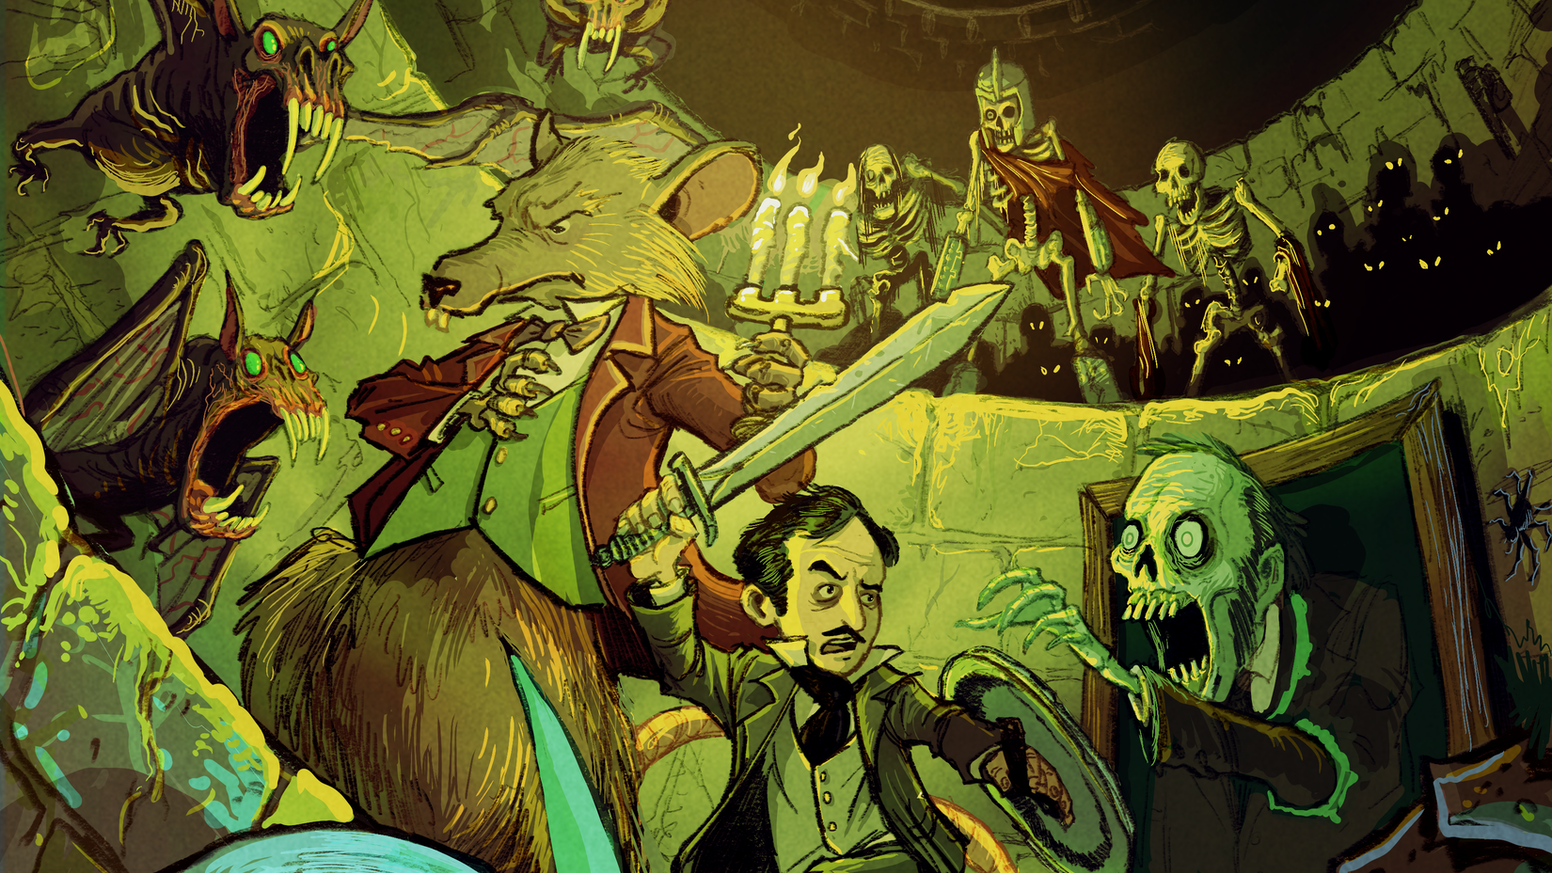 The first issue of an epic fantasy adventure through a nightmare world of mythological gods and monsters inside Edgar Allan Poe's head!